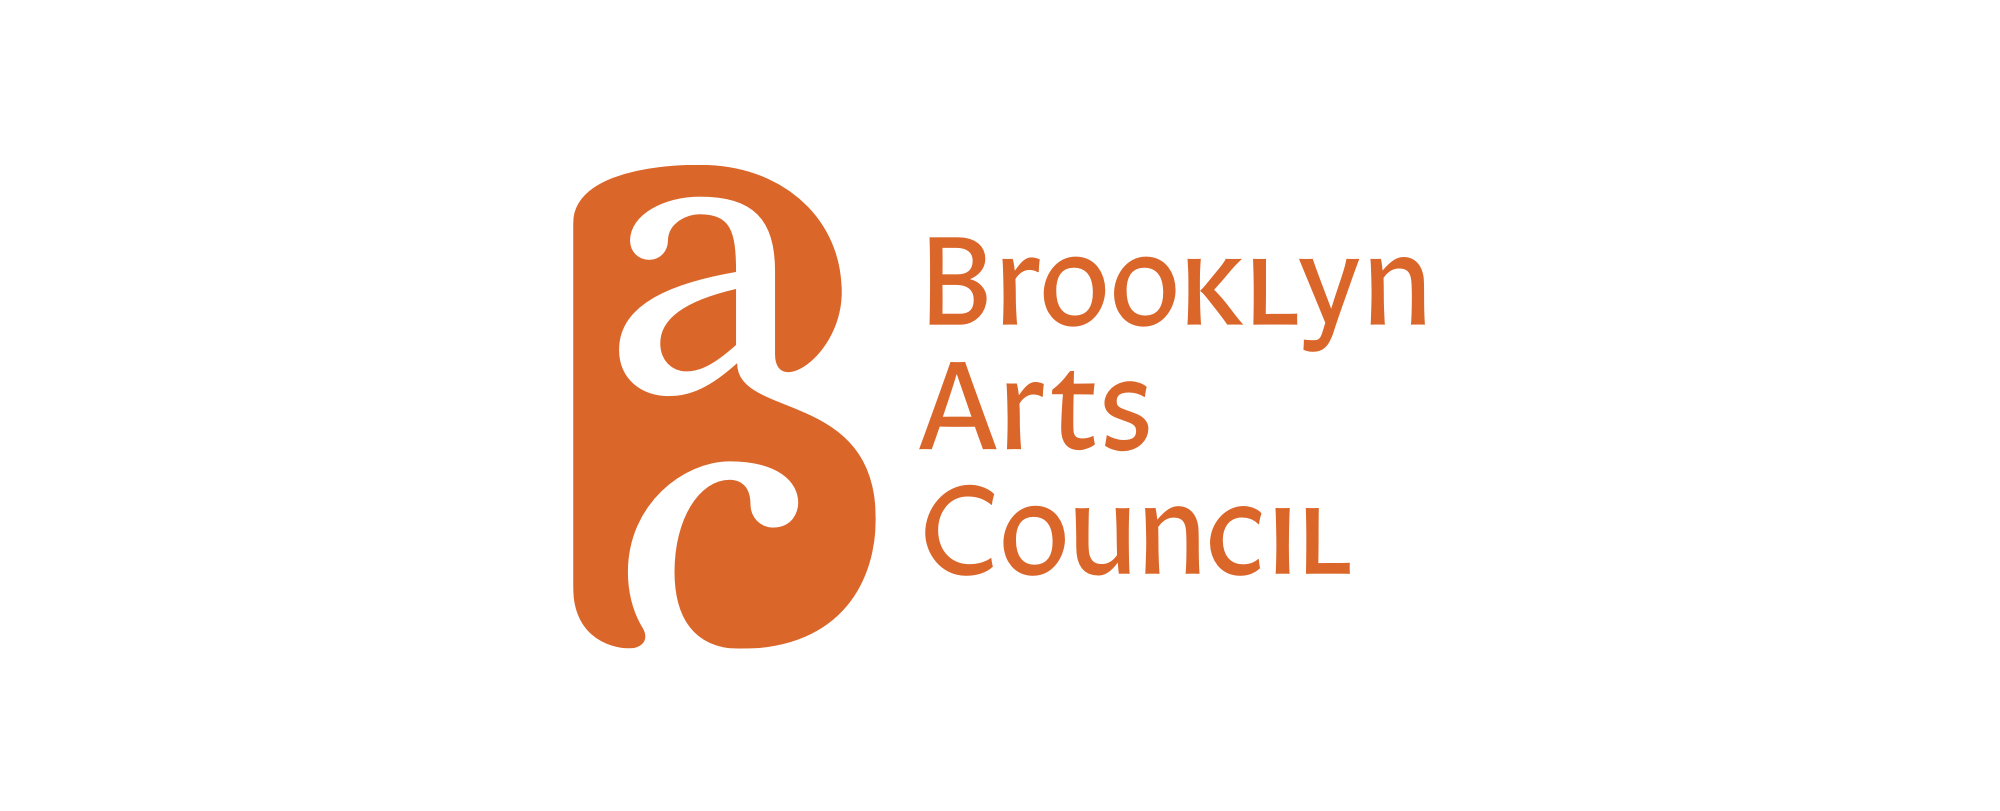 Brooklyn Arts Council Identity